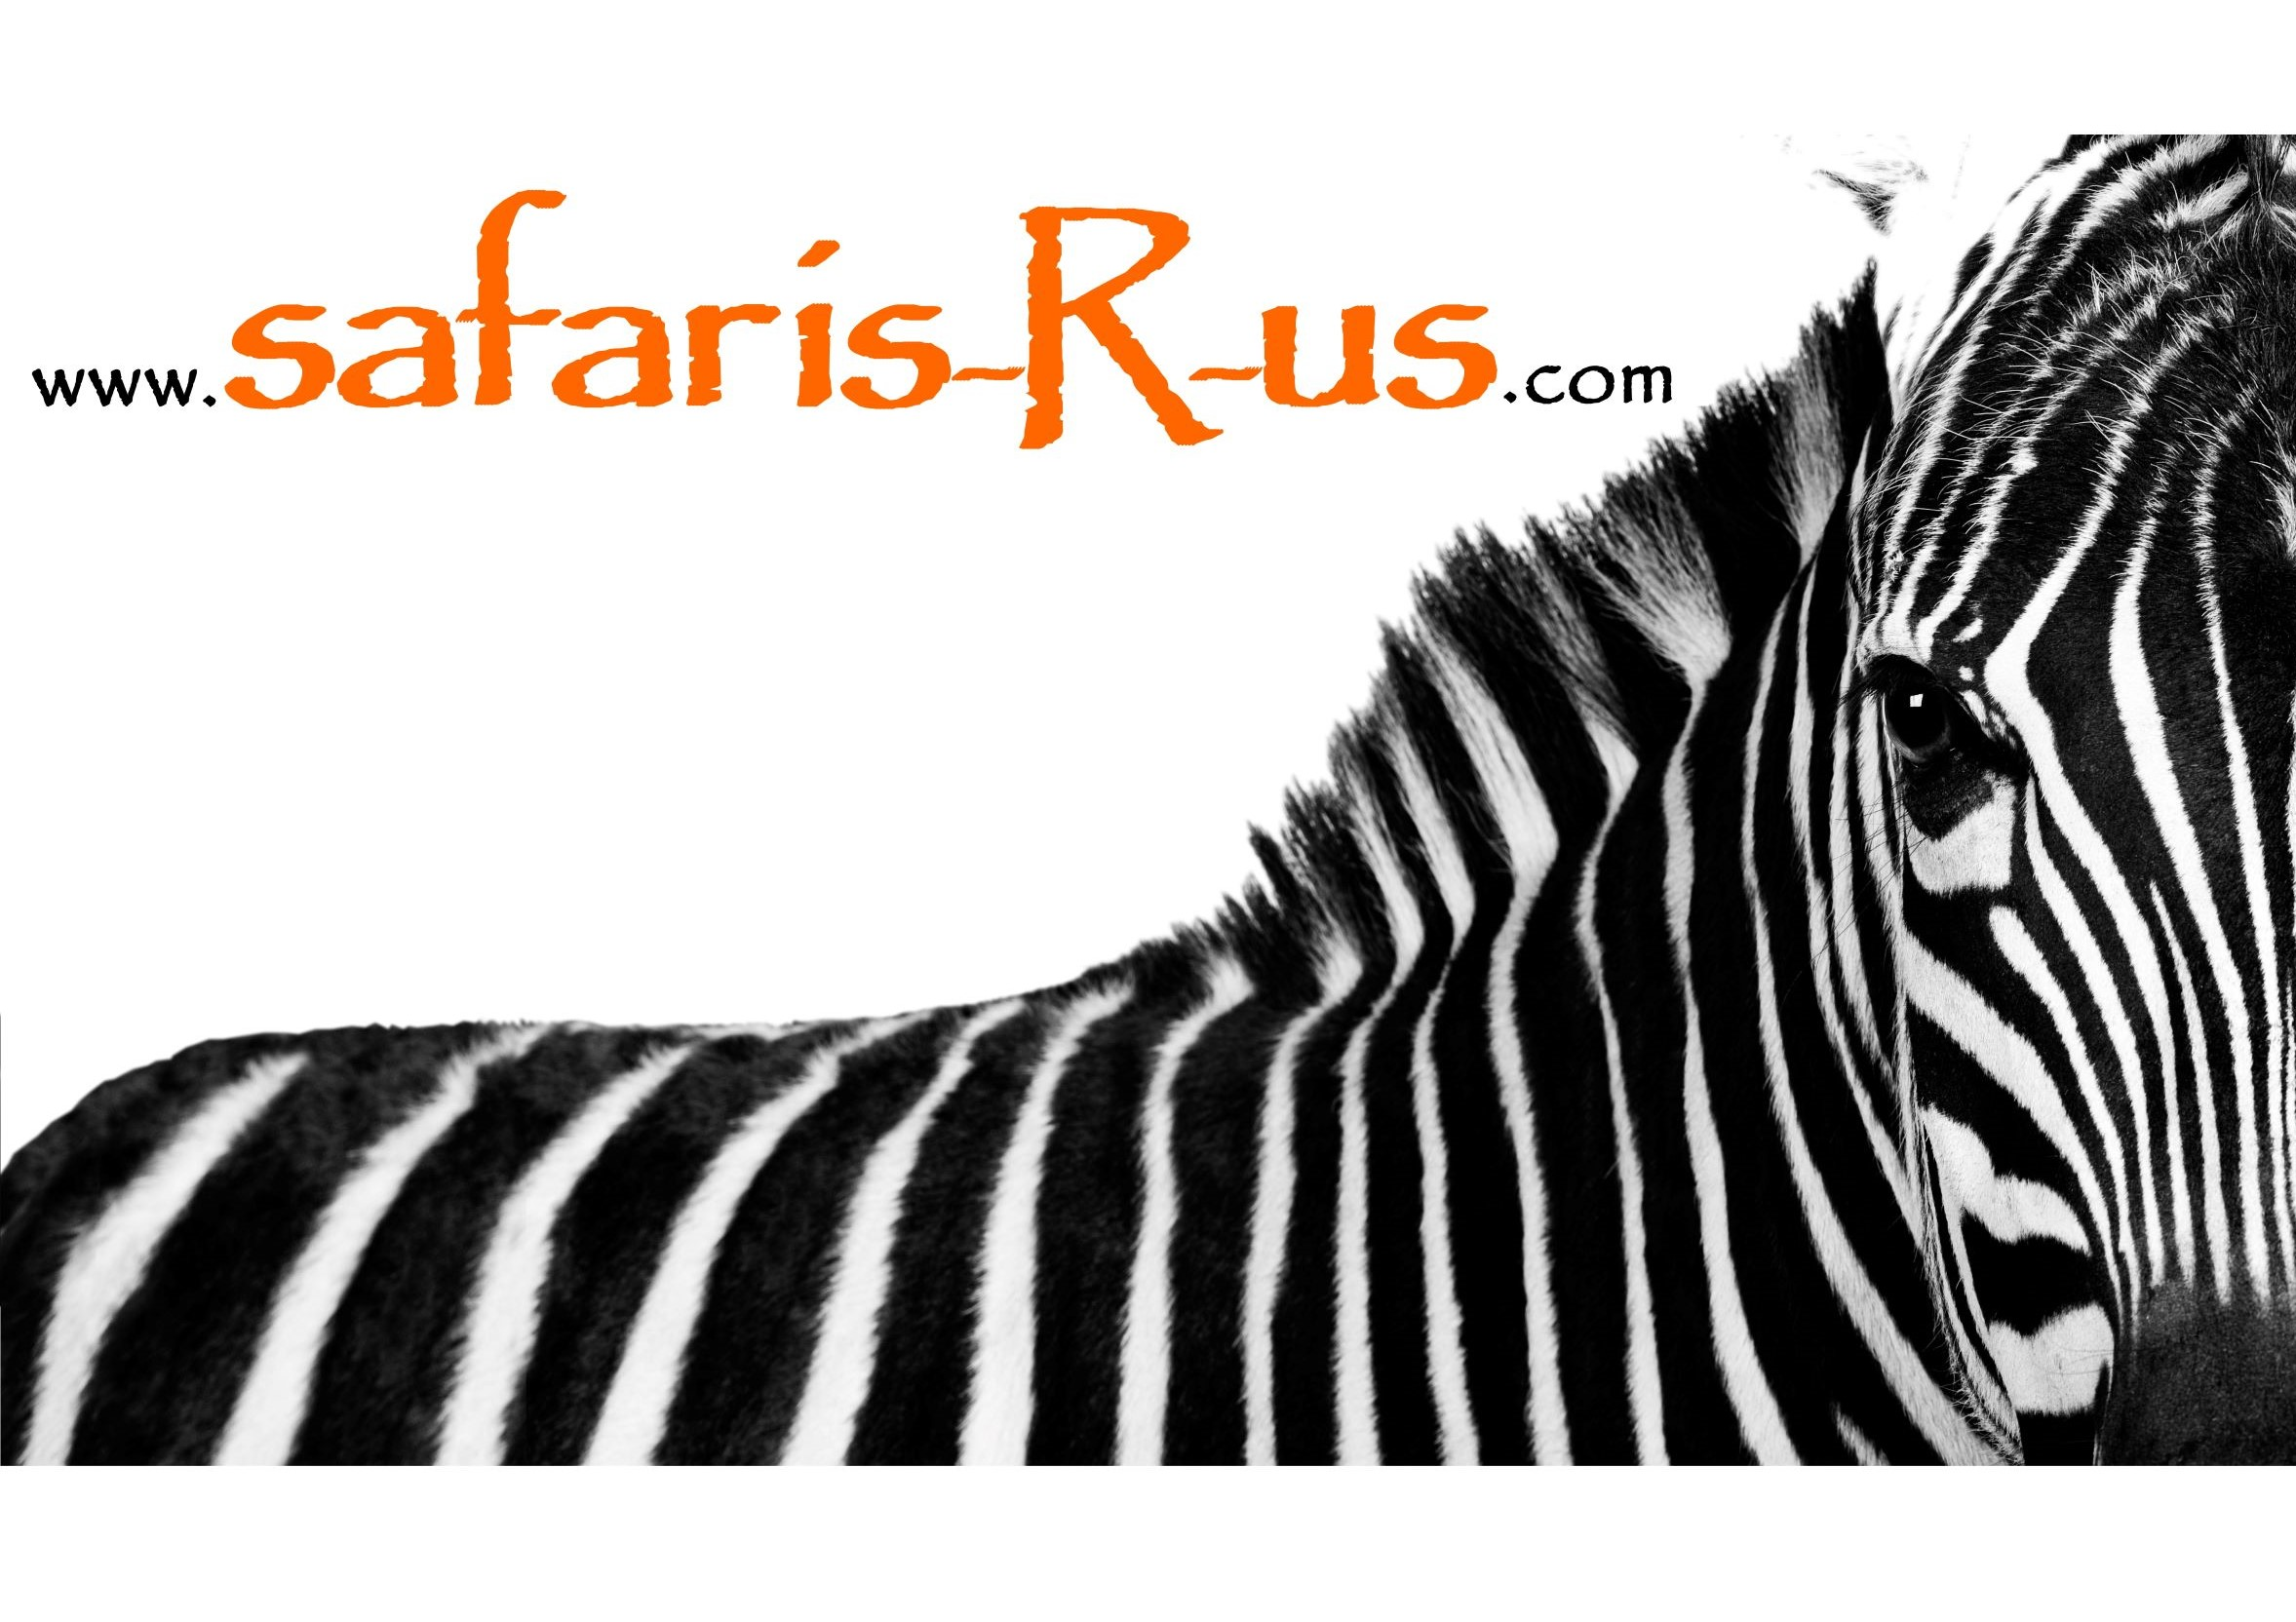 Friends of the College - Safaris R Us